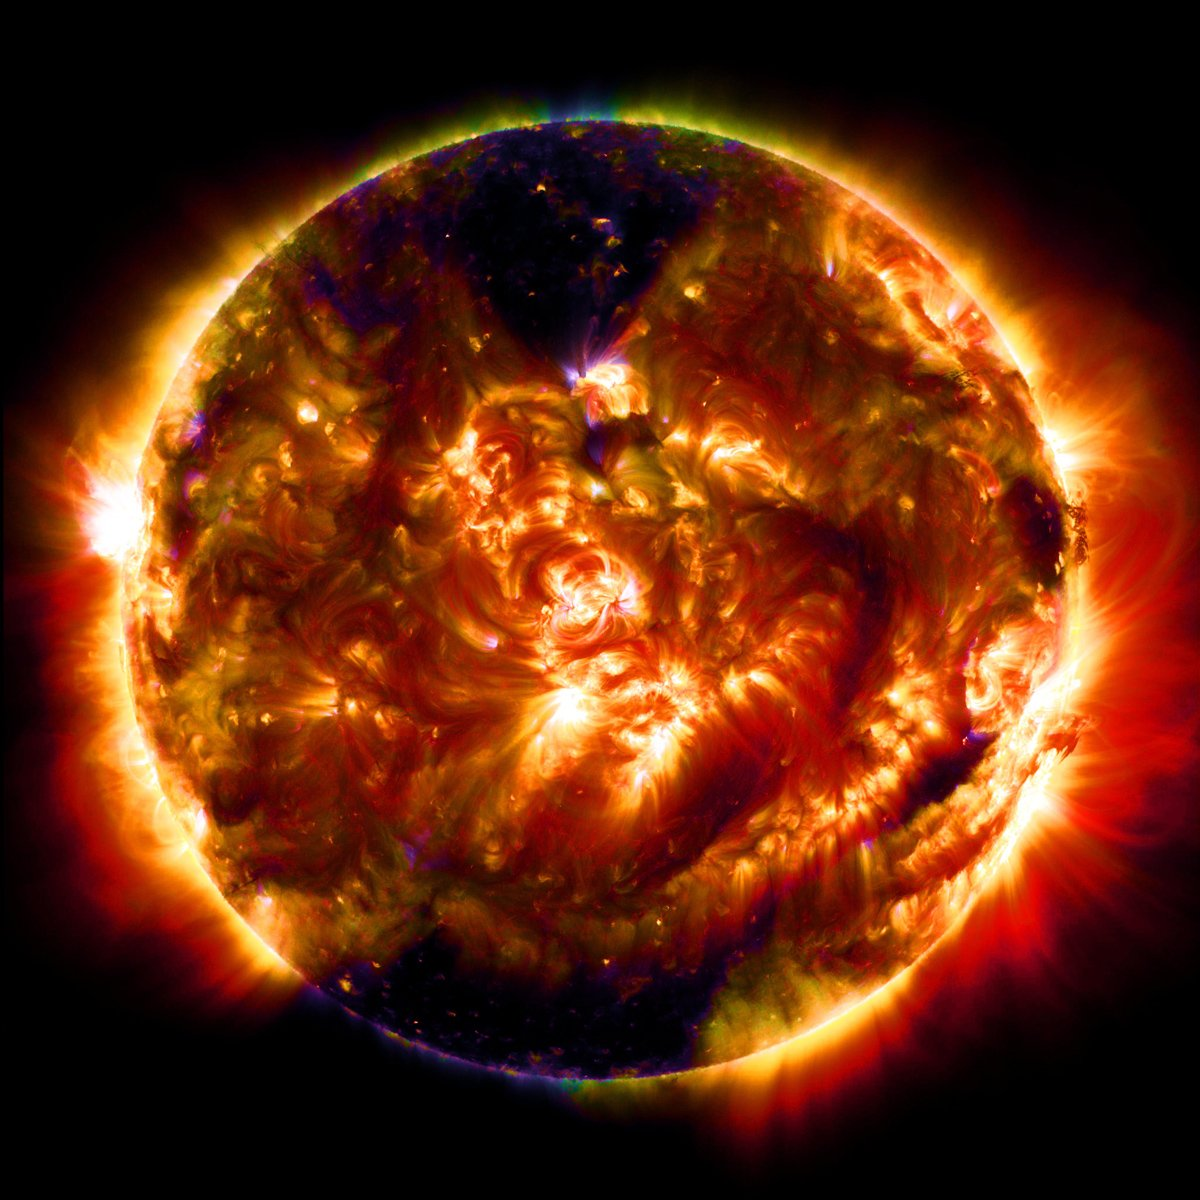 100 Millionth image of the Sun by NASA Great Photos